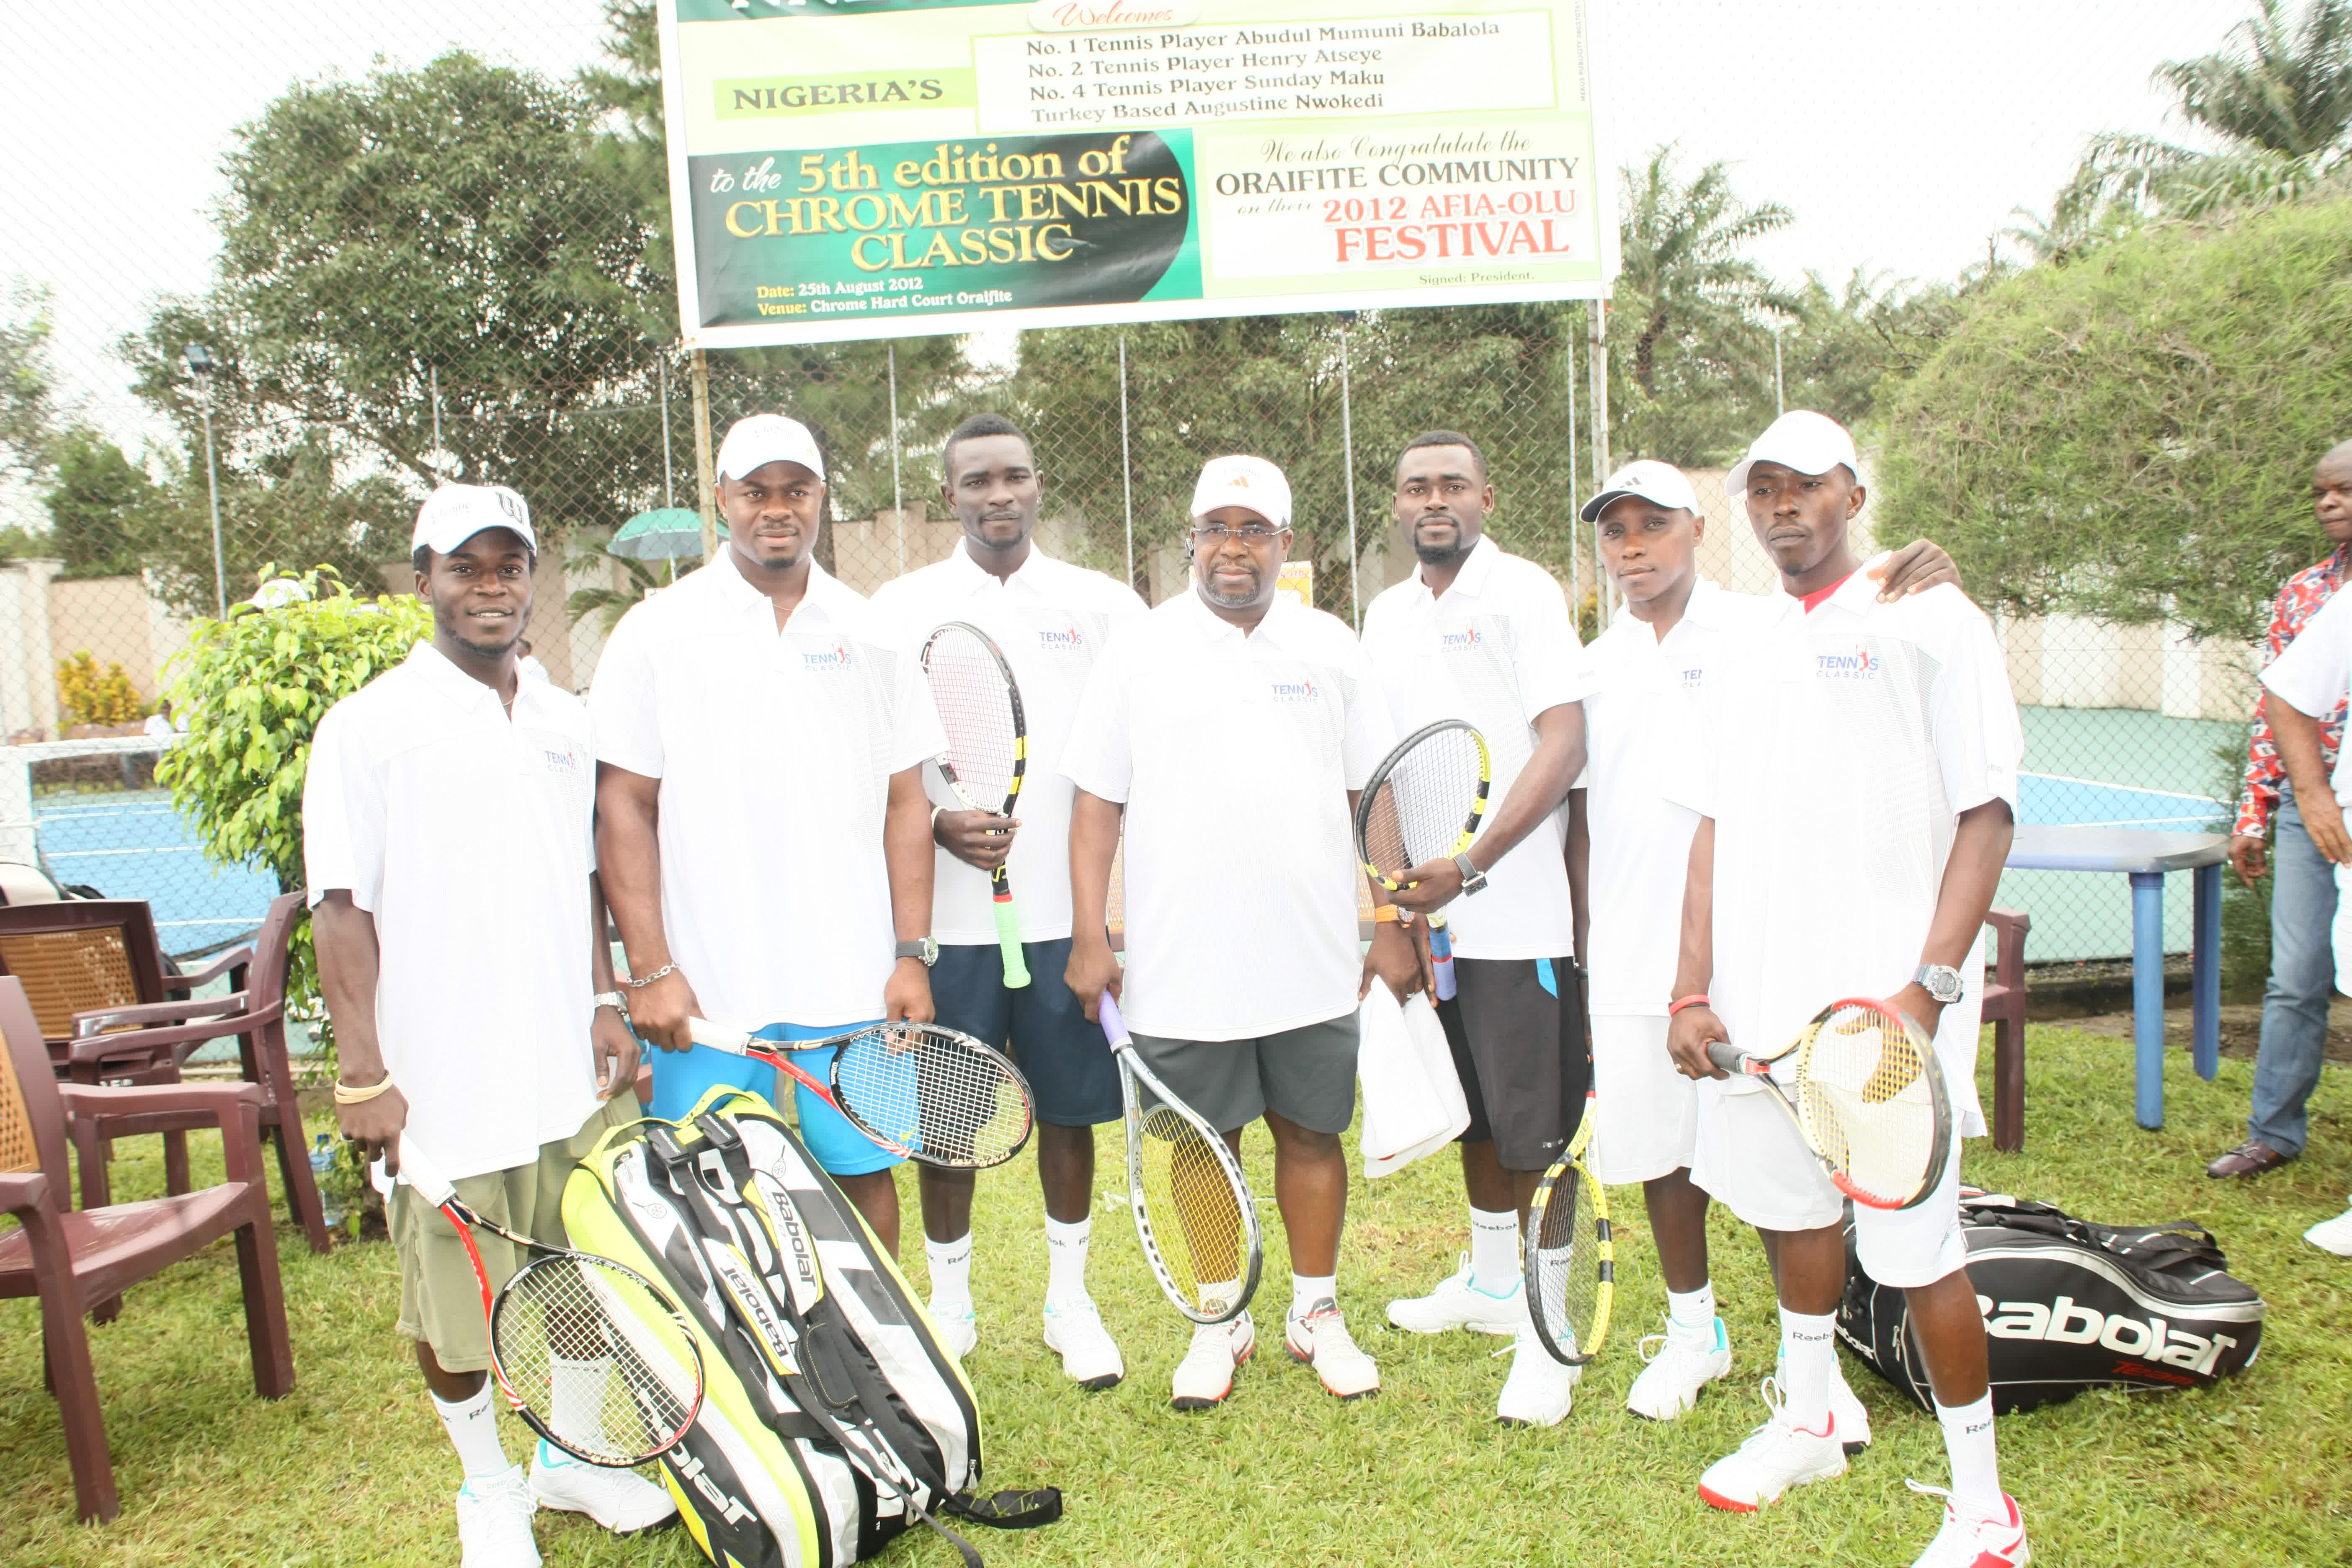 The 5th Chrome Tennis Classic